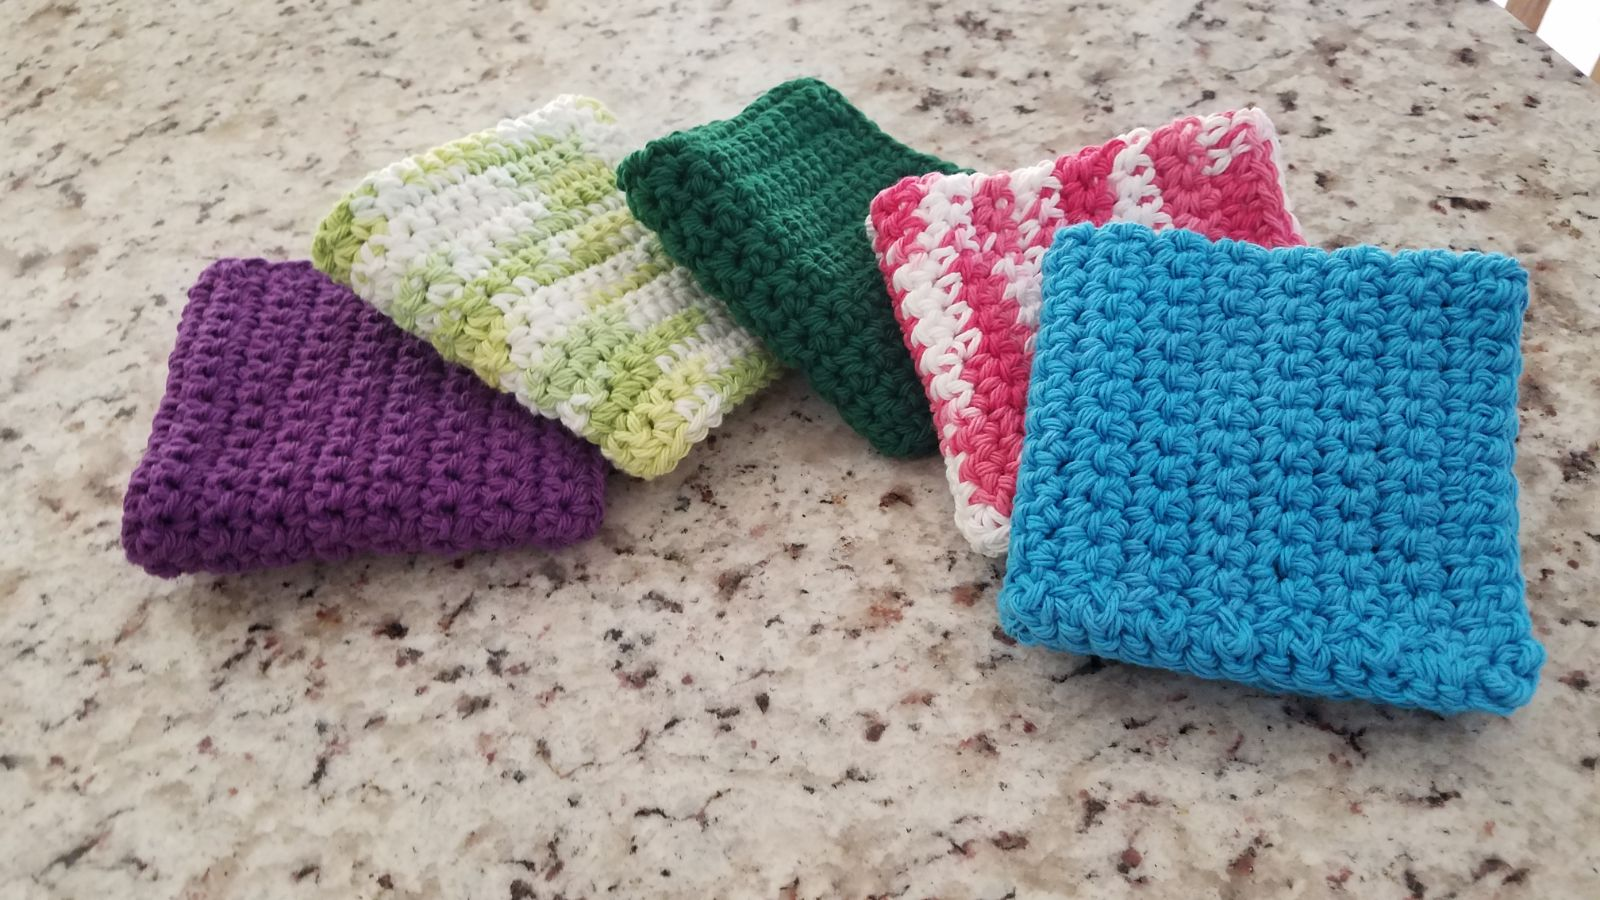 Set of 4 handmade crocheted dishcloths